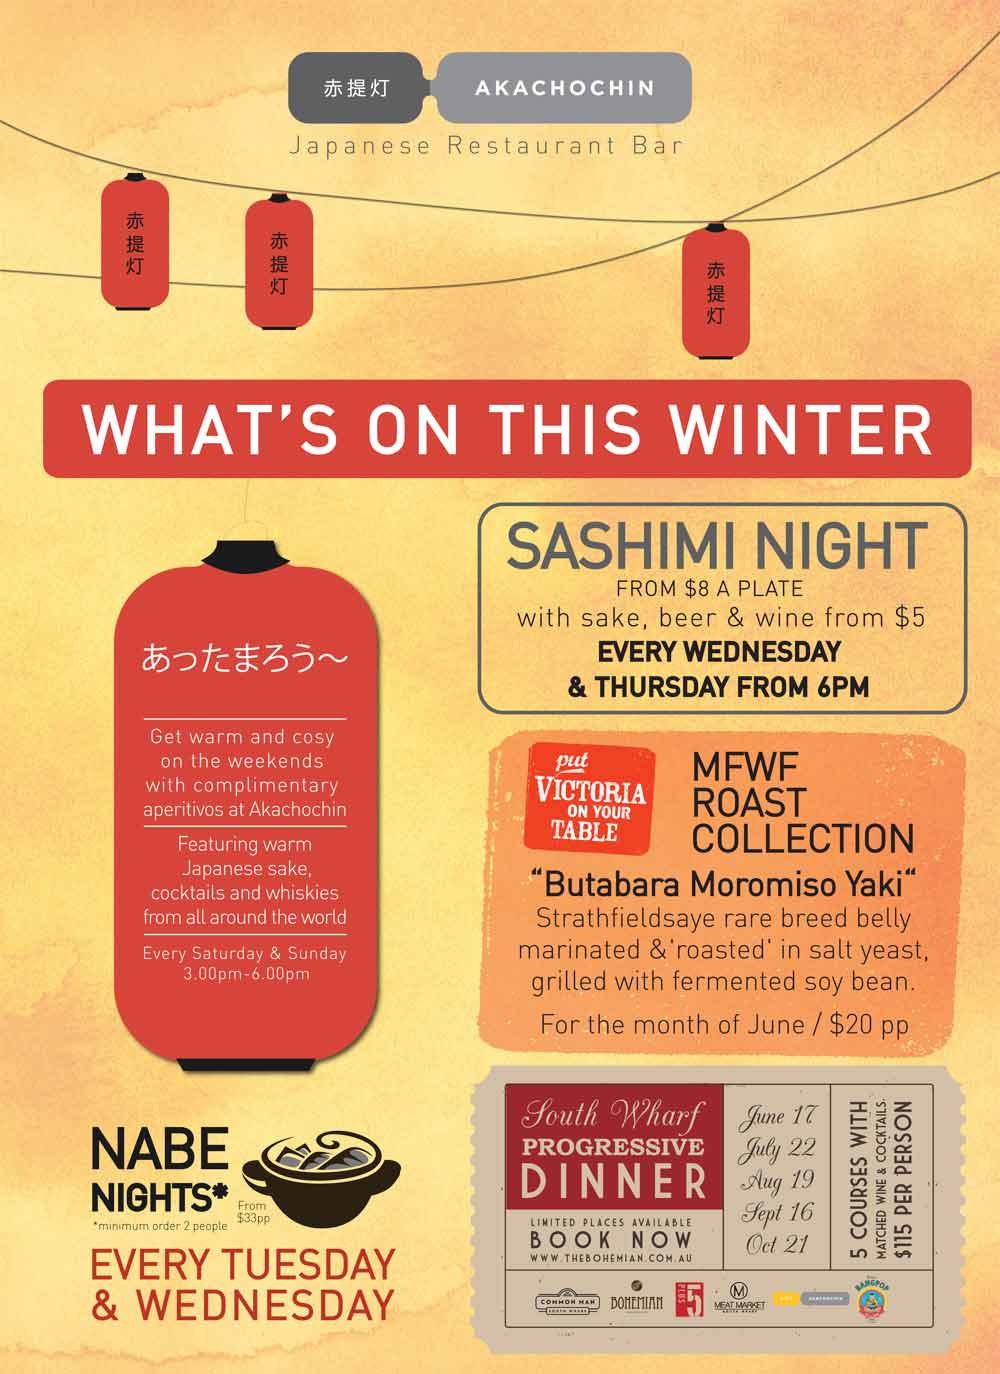 Whats on this winter at Akachochin